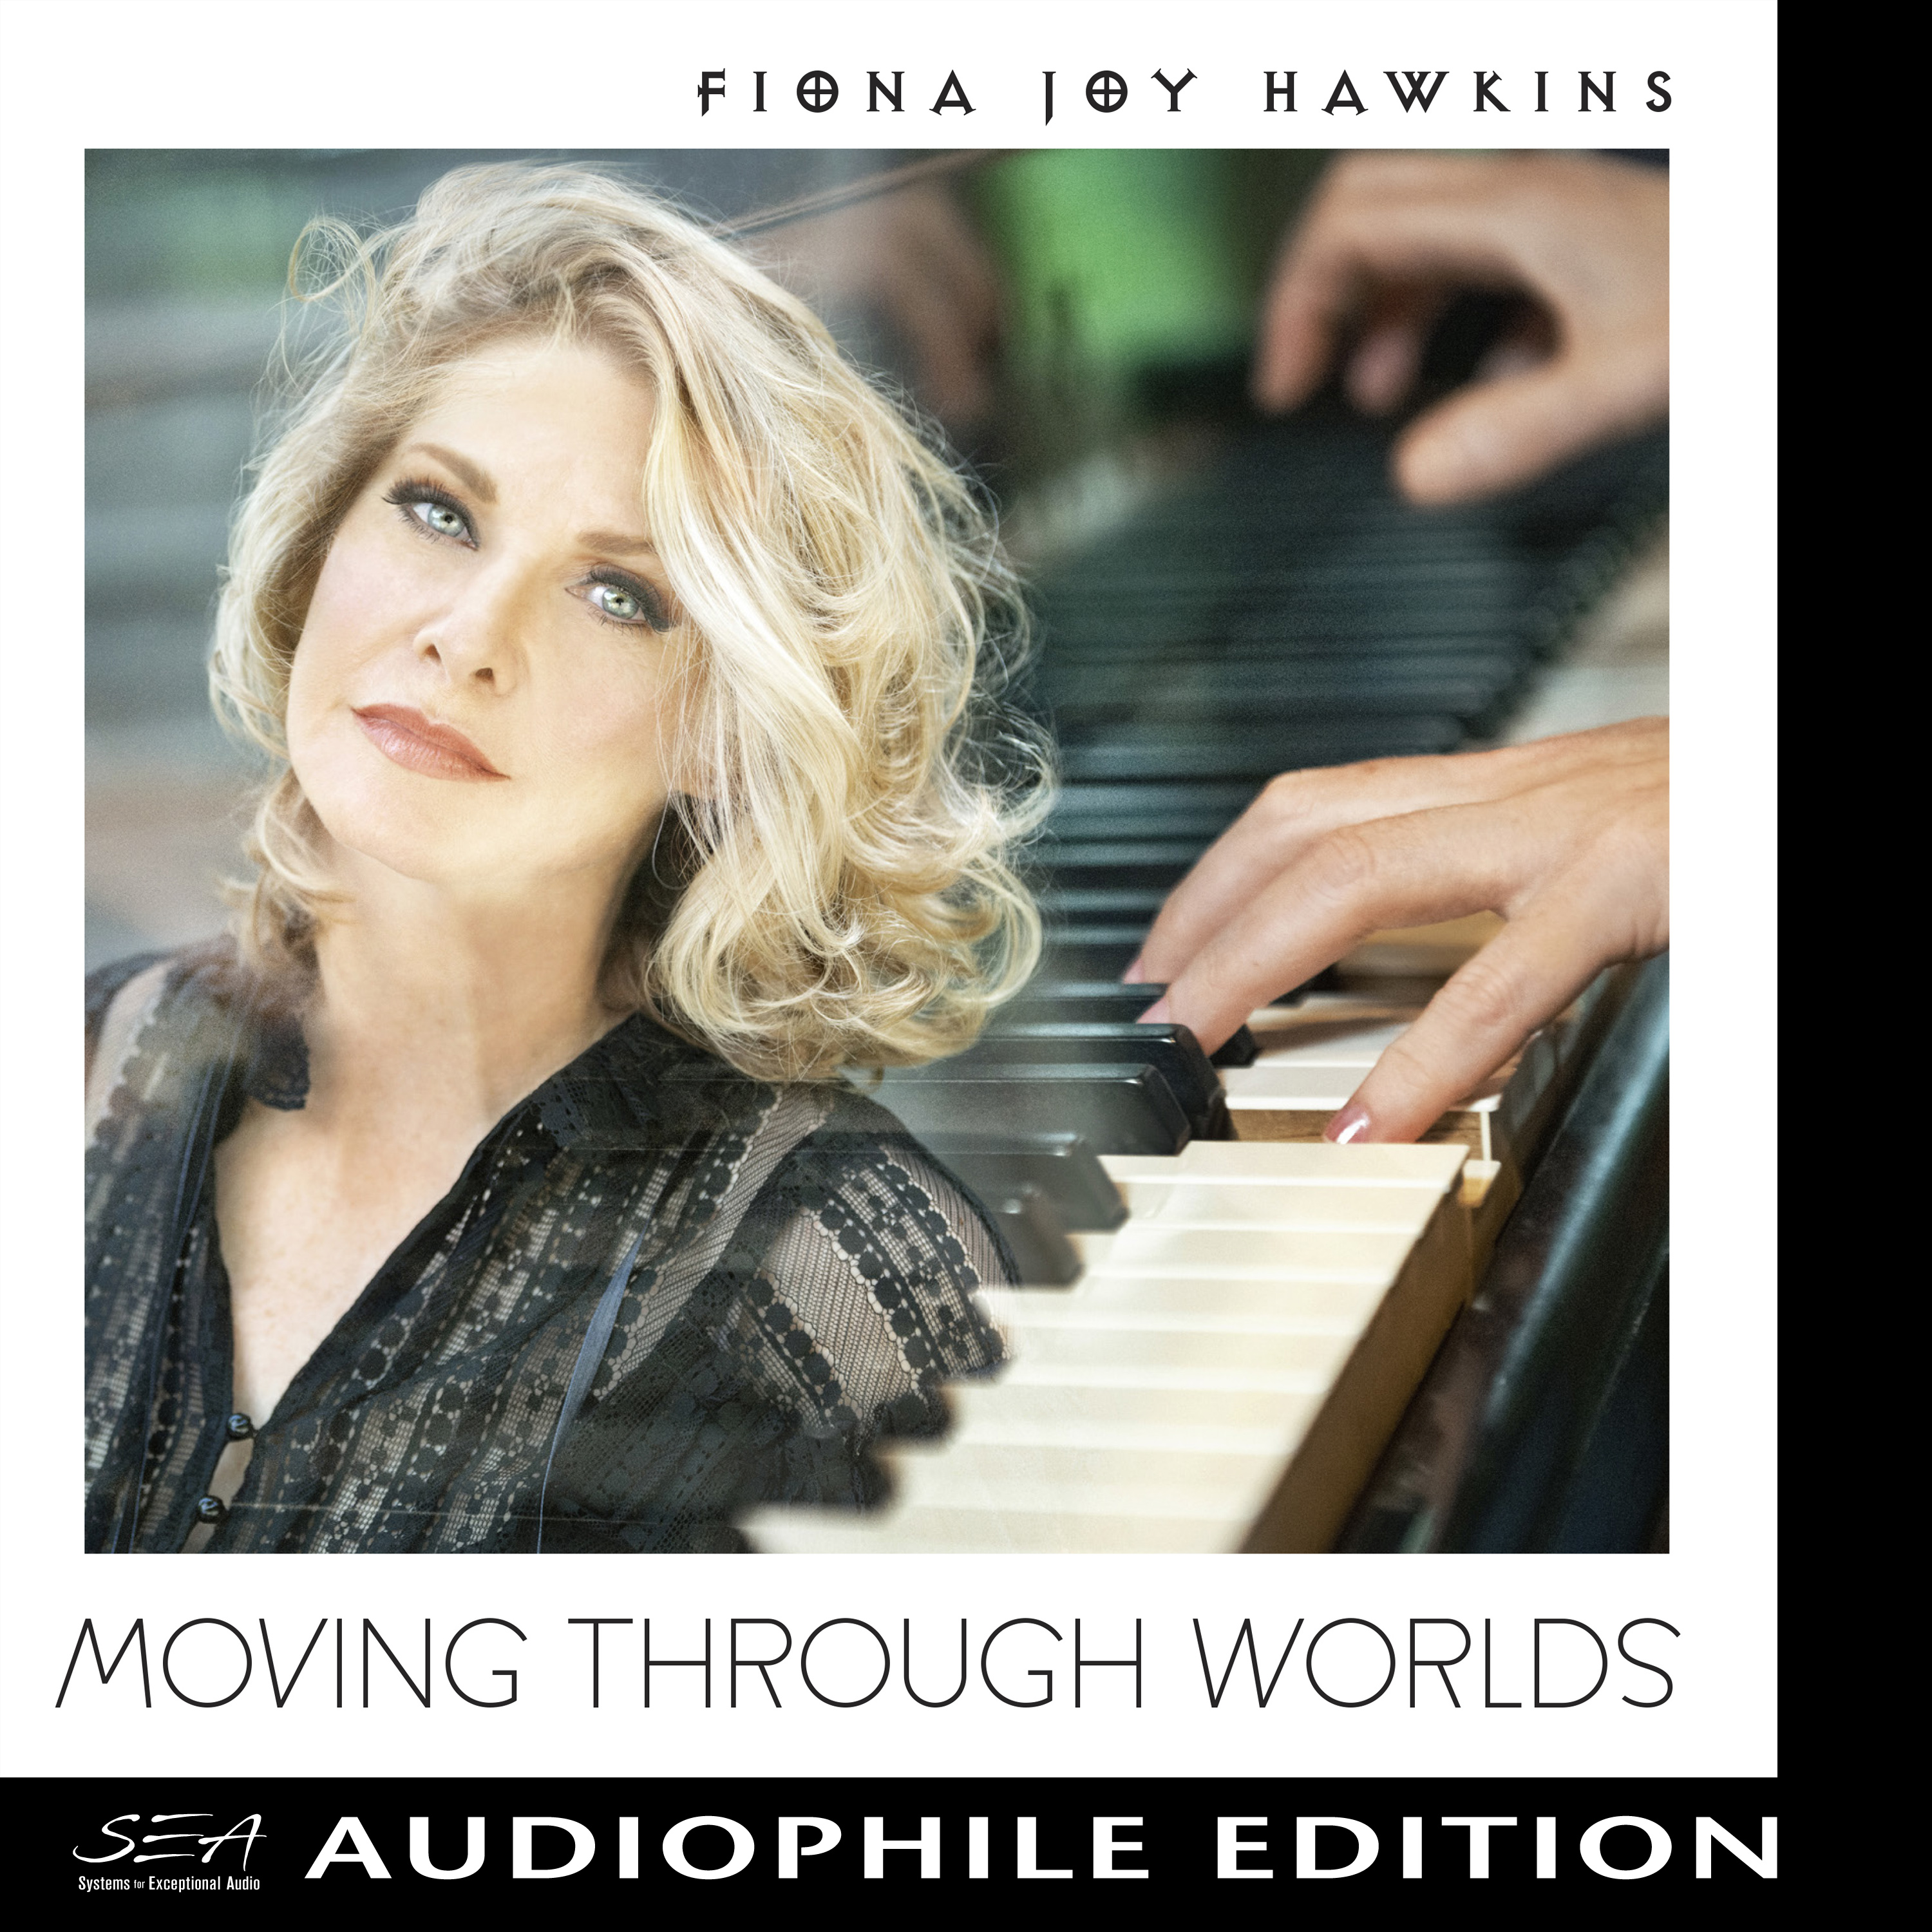 Fiona Joy Hawkins - Moving Through Worlds - Cover Image